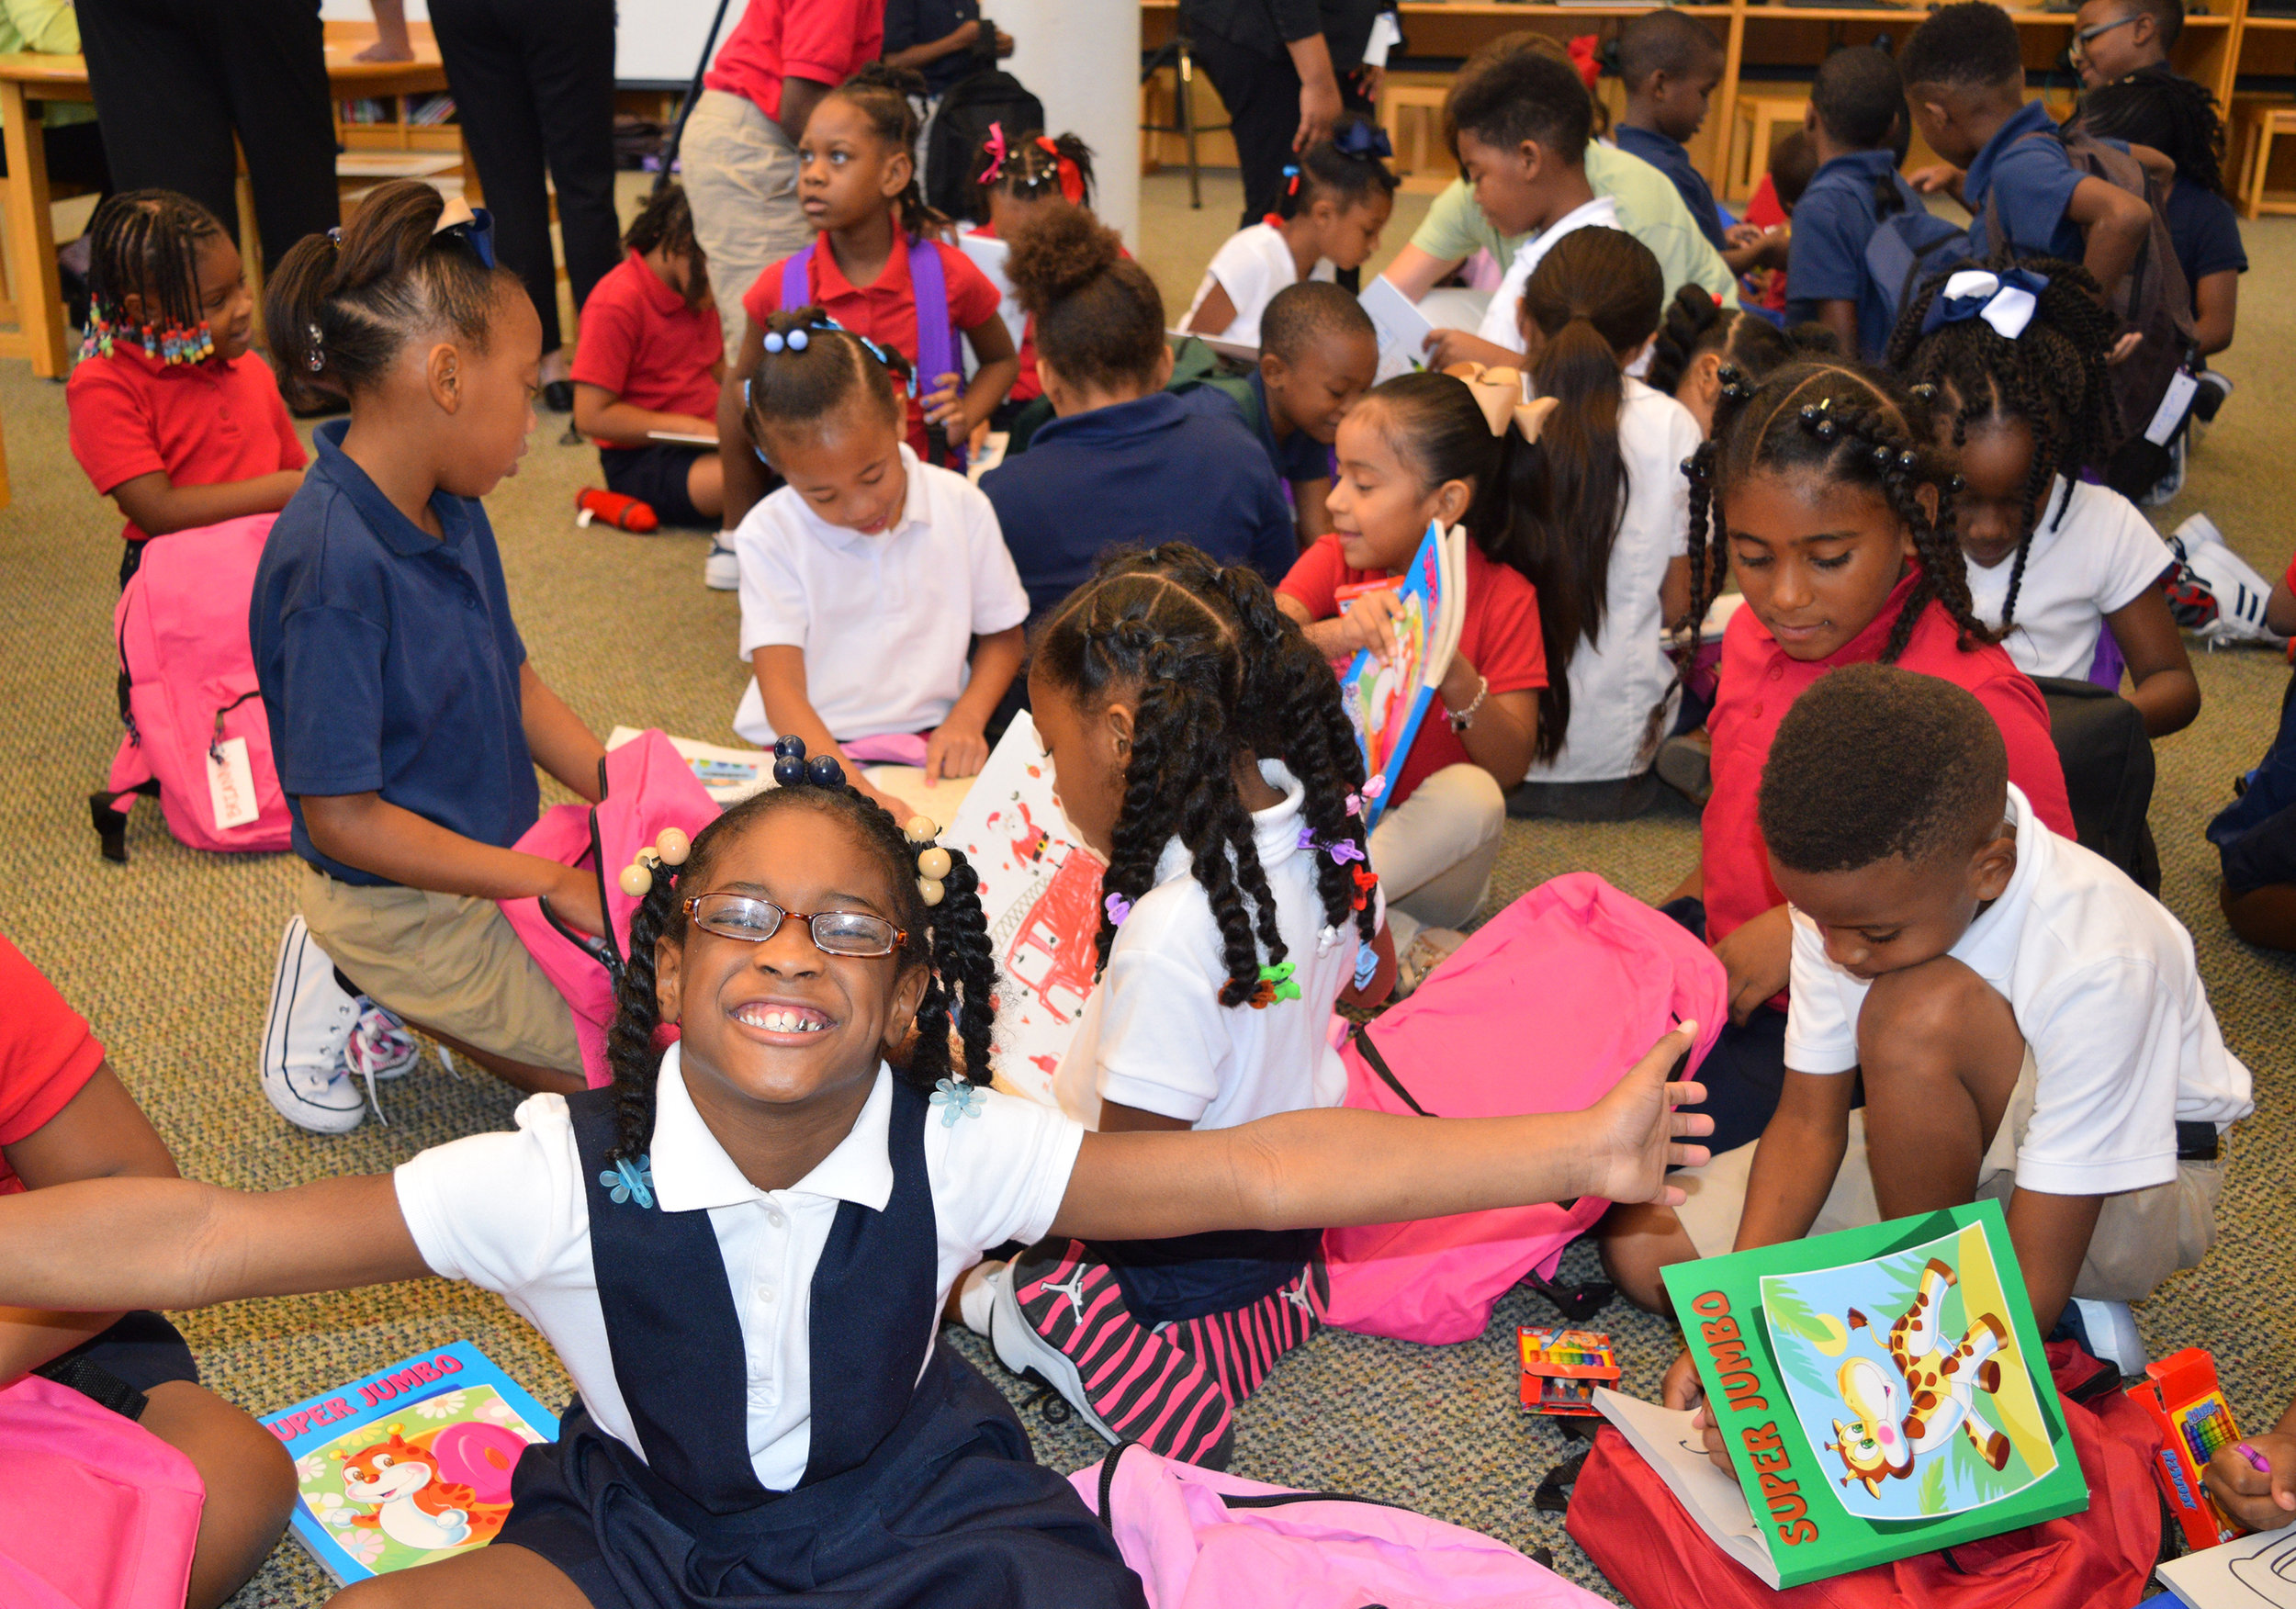 Students at Foster Elementary in HISD enjoying their new books and backpacks